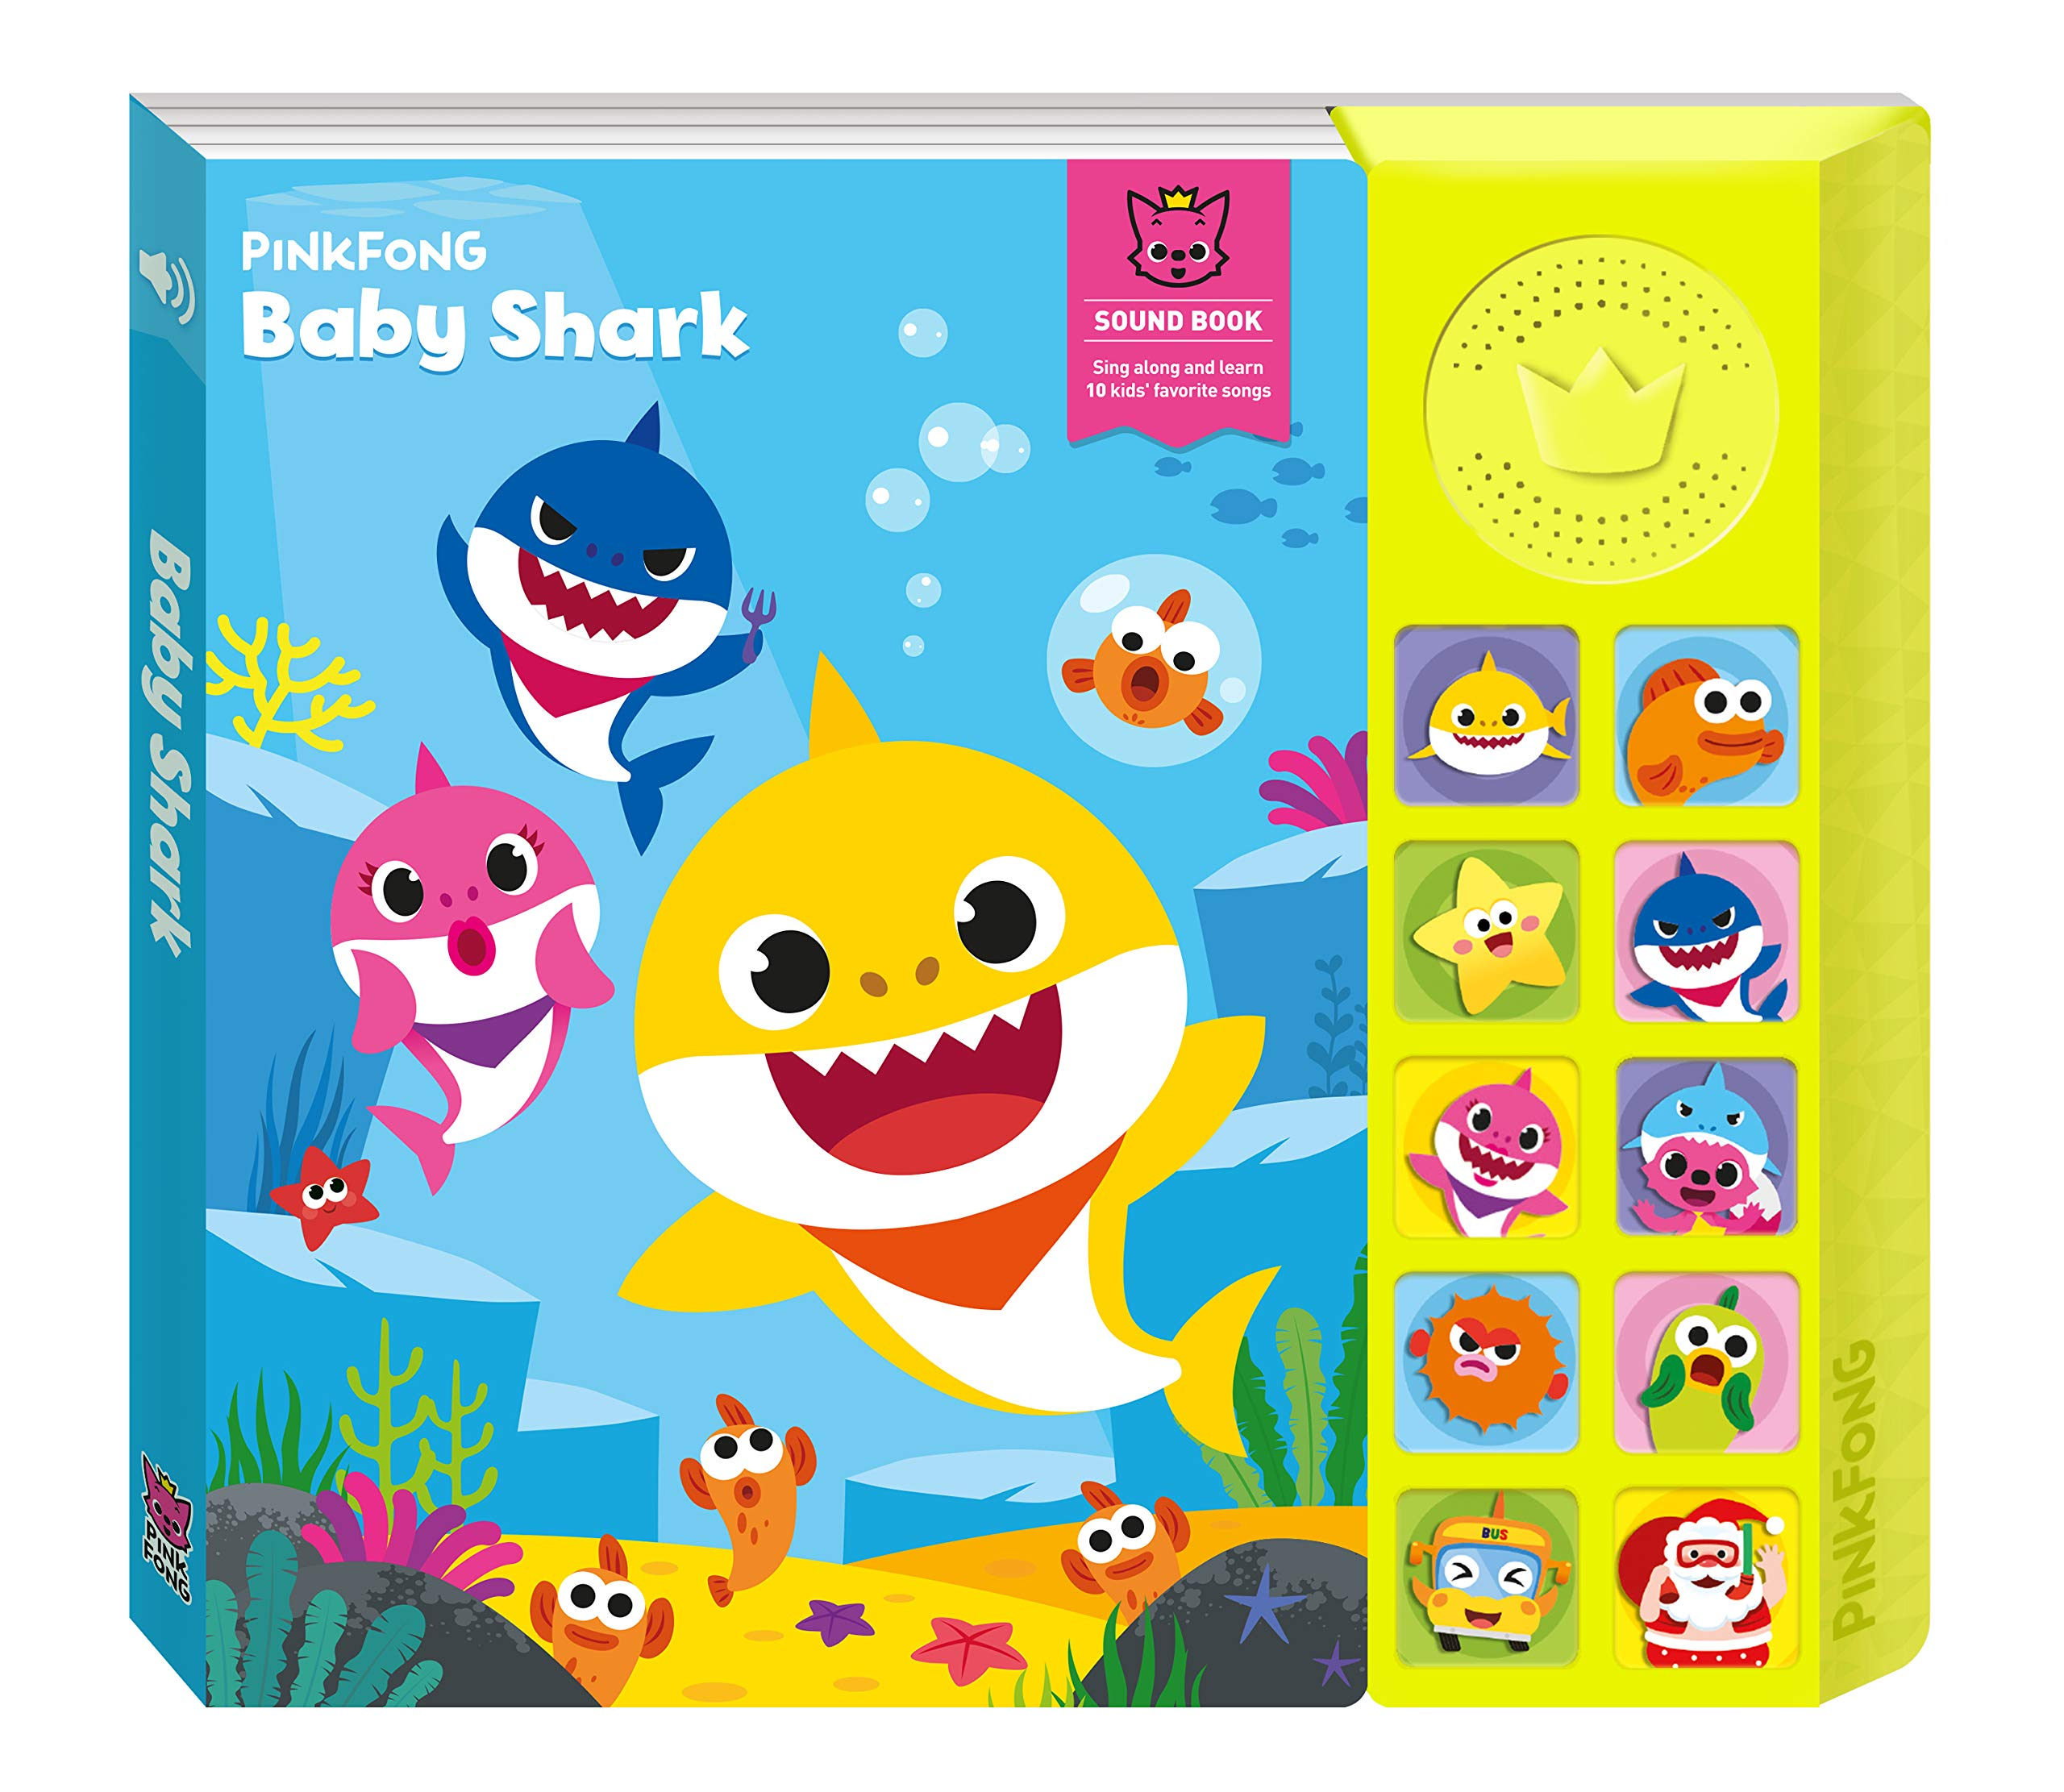 Pinkfong Baby Shark Official Sound Book by Pinkfong